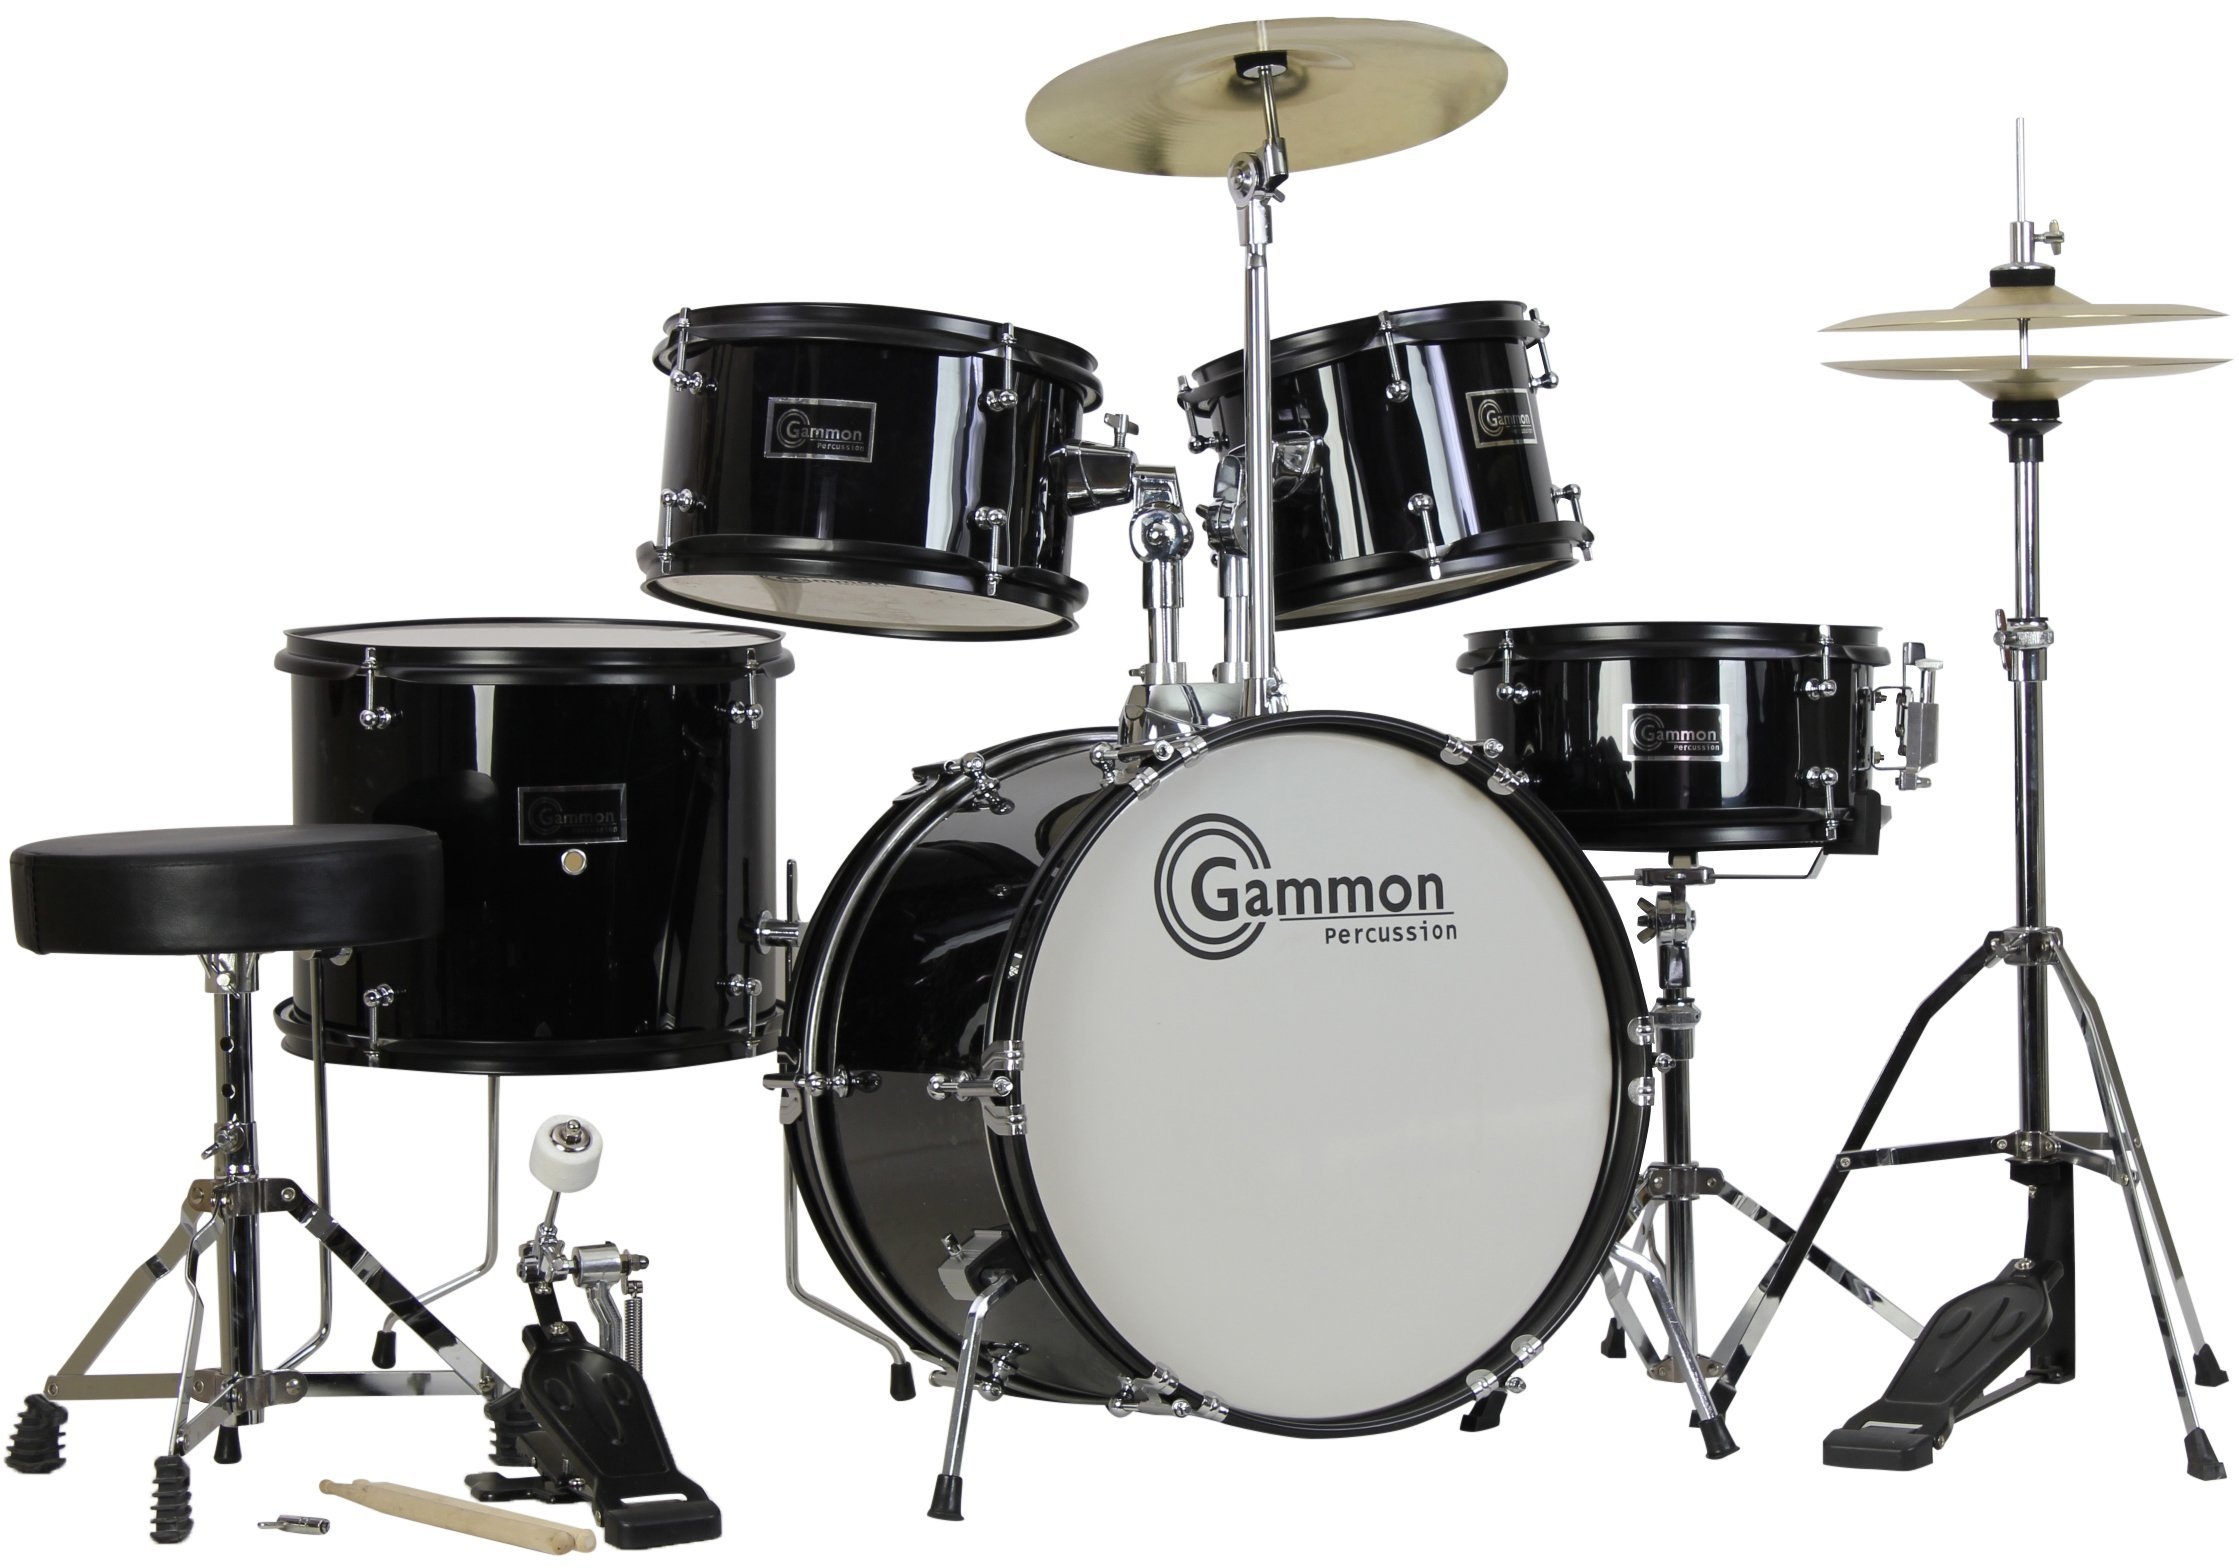 Gammon 5-Piece Junior Starter Drum Kit with Cymbals, Hardware, Sticks, & Throne - Black (Renewed) by Gammon Percussion